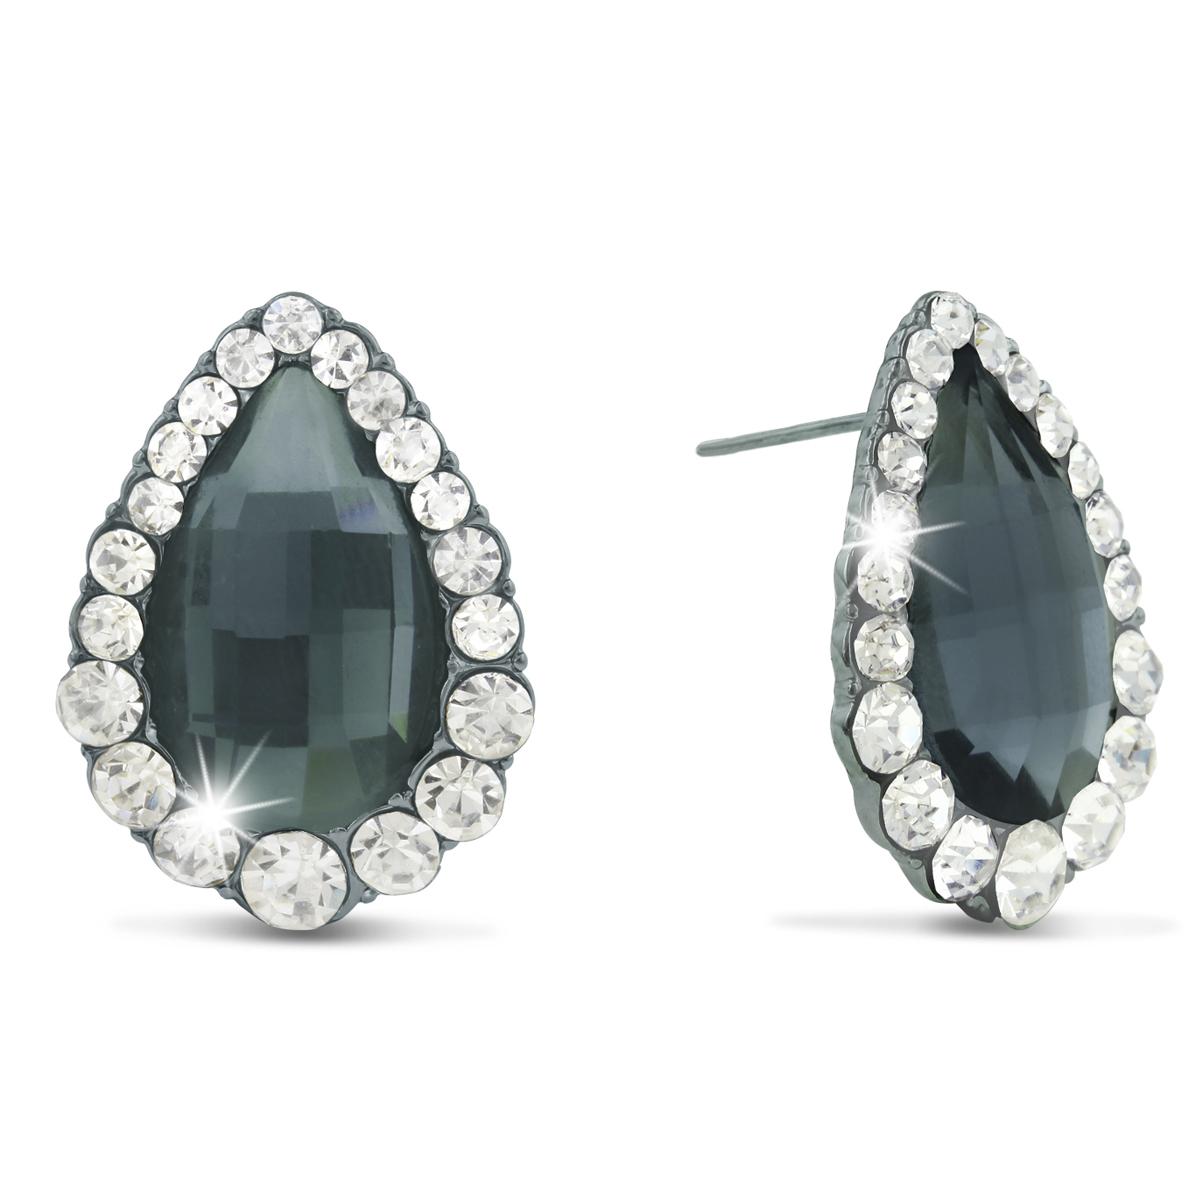 Swarovski Elements Pear Shape Stud Earrings, Pushbacks by SuperJe